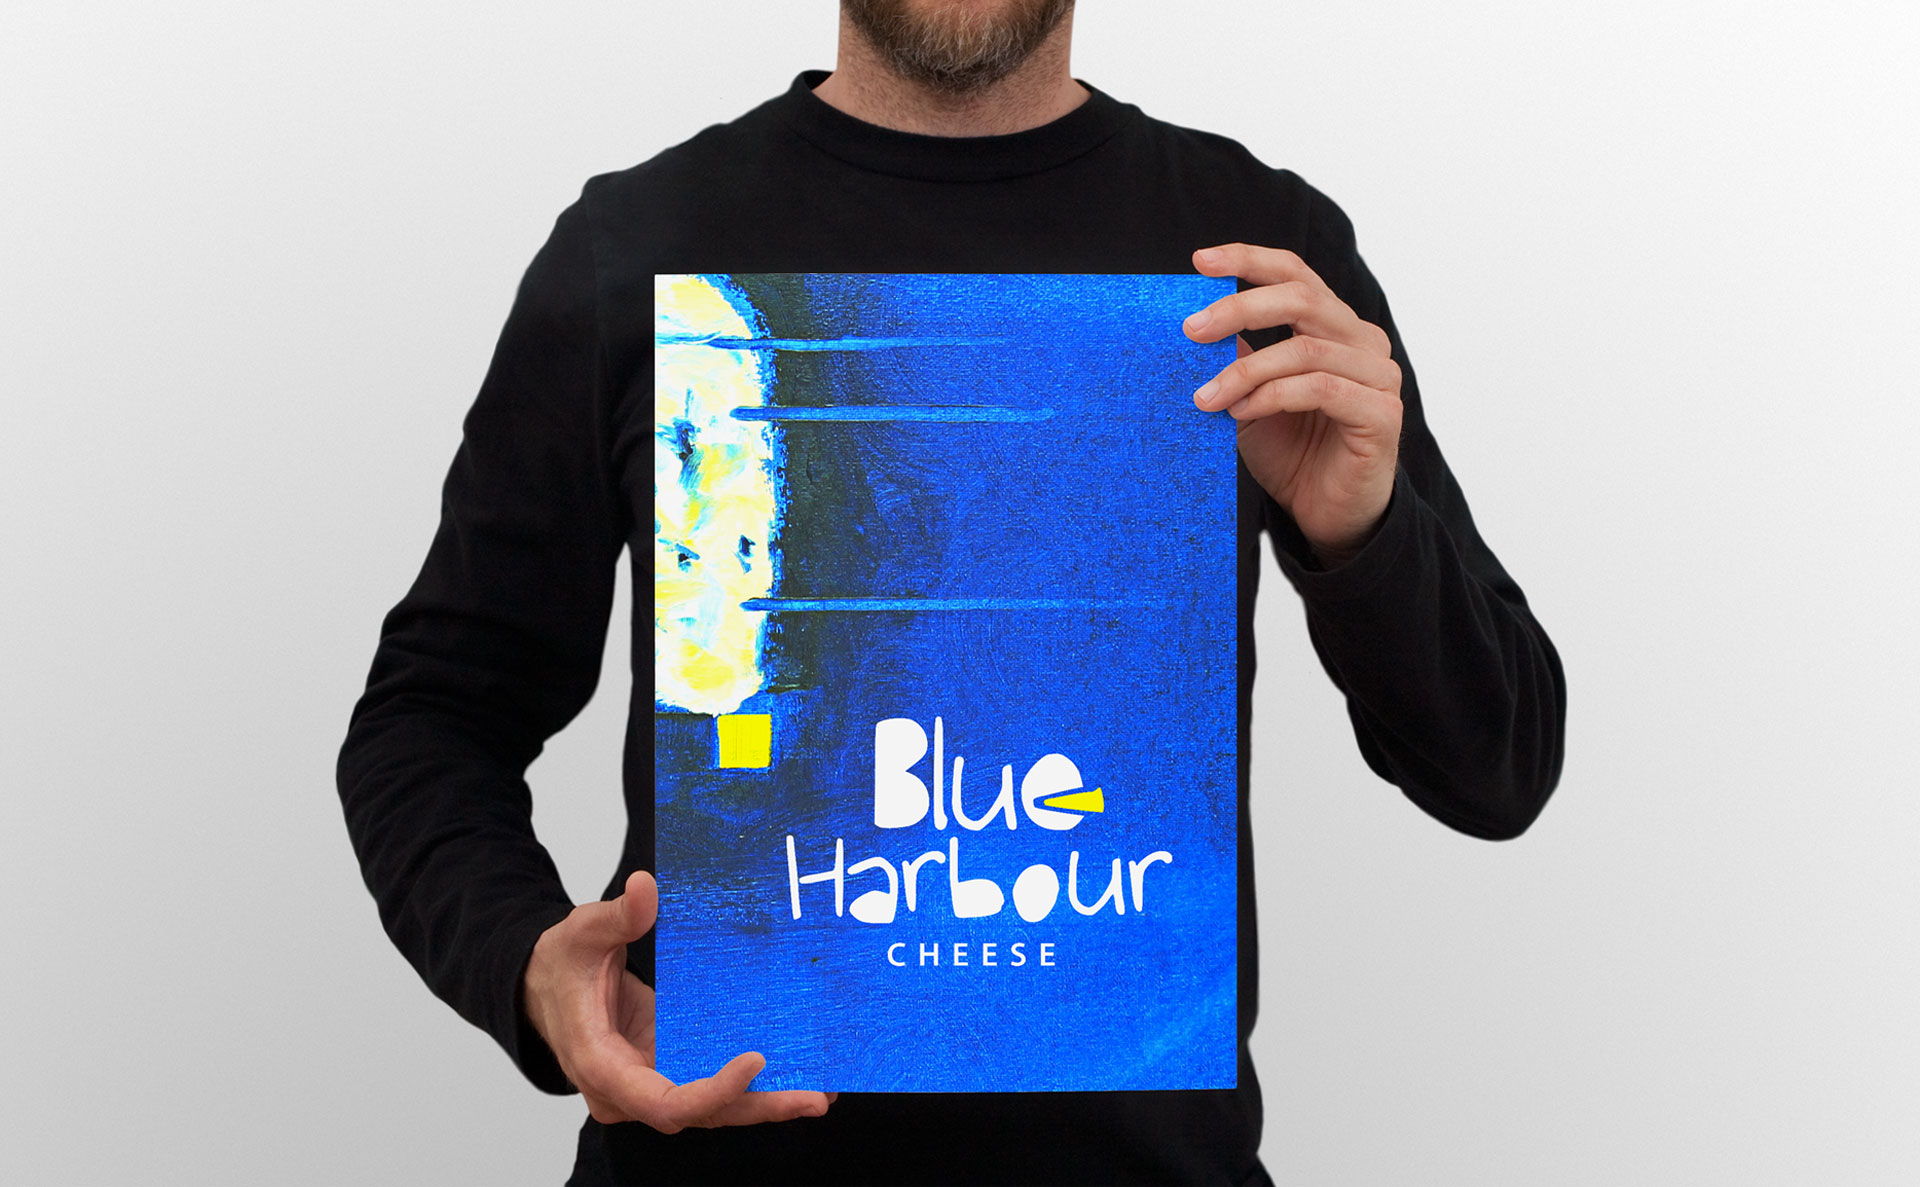 Blue harbour cheese artwork, blue, Nova Scotia